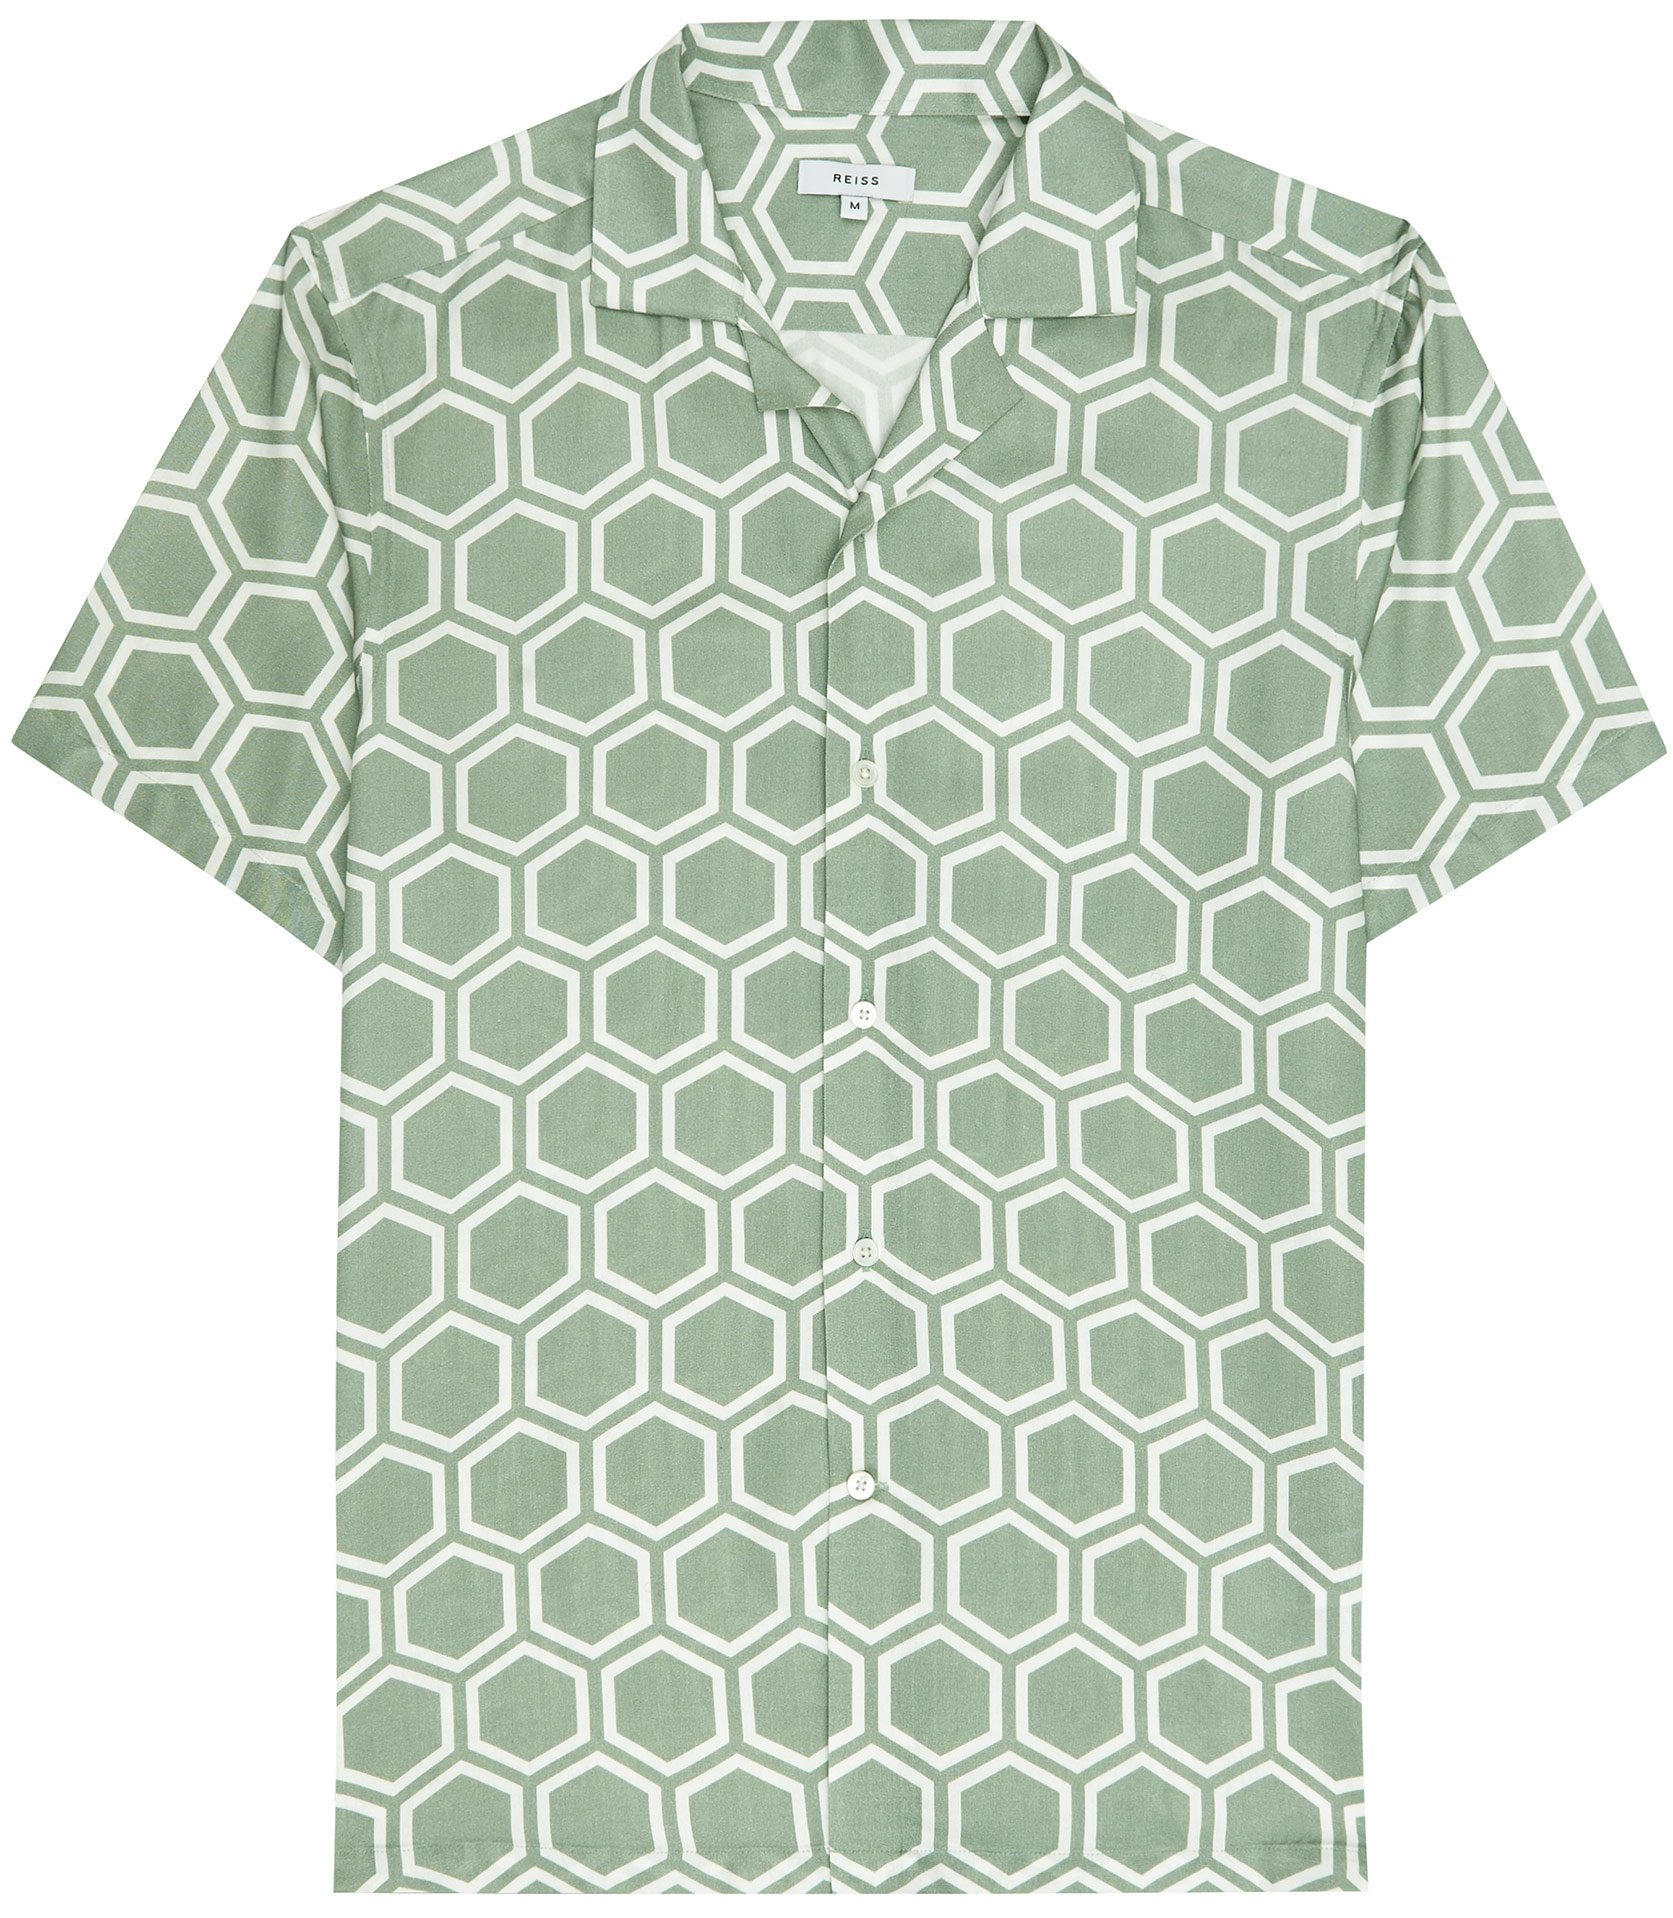 Green printed shirt - £85 at Reiss